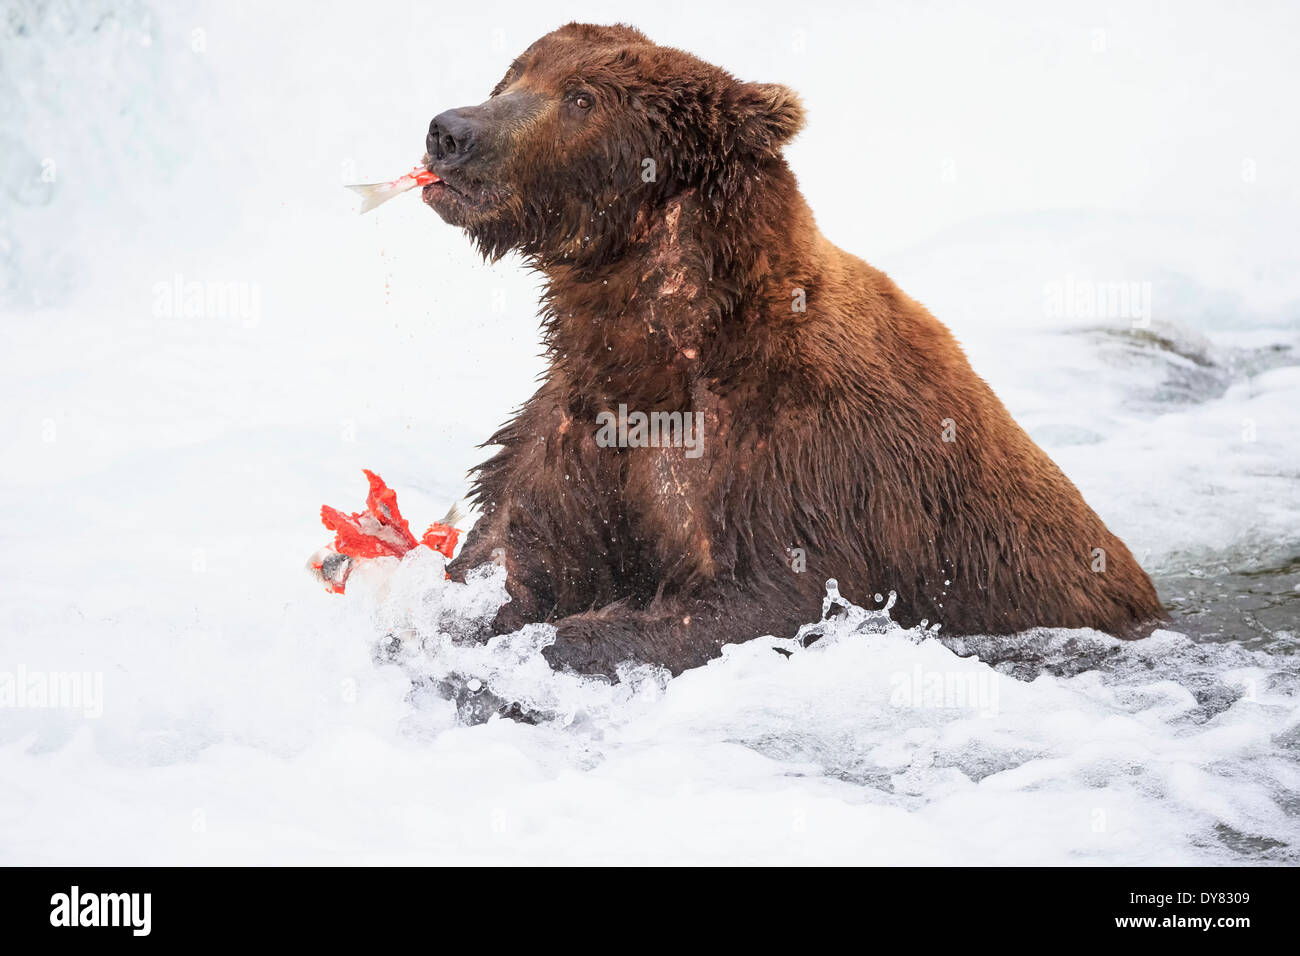 USA, Alaska, Katmai National Park, Brown bear (Ursus arctos) at Brooks Falls with caught salmon - Stock Image